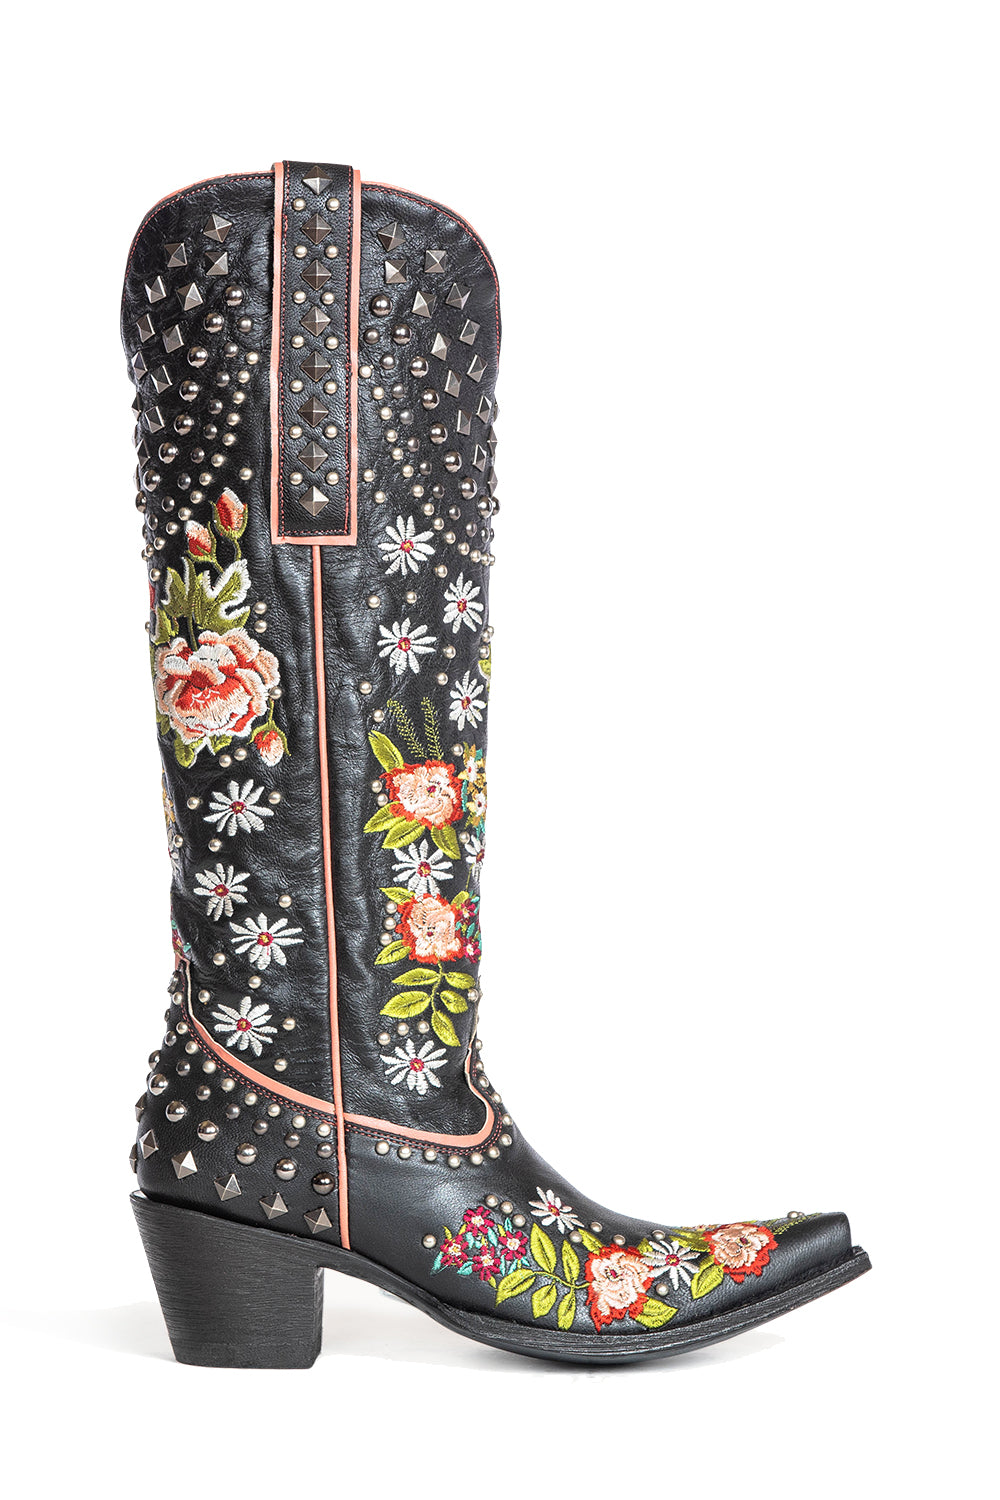 Backwoods Barbie Boot